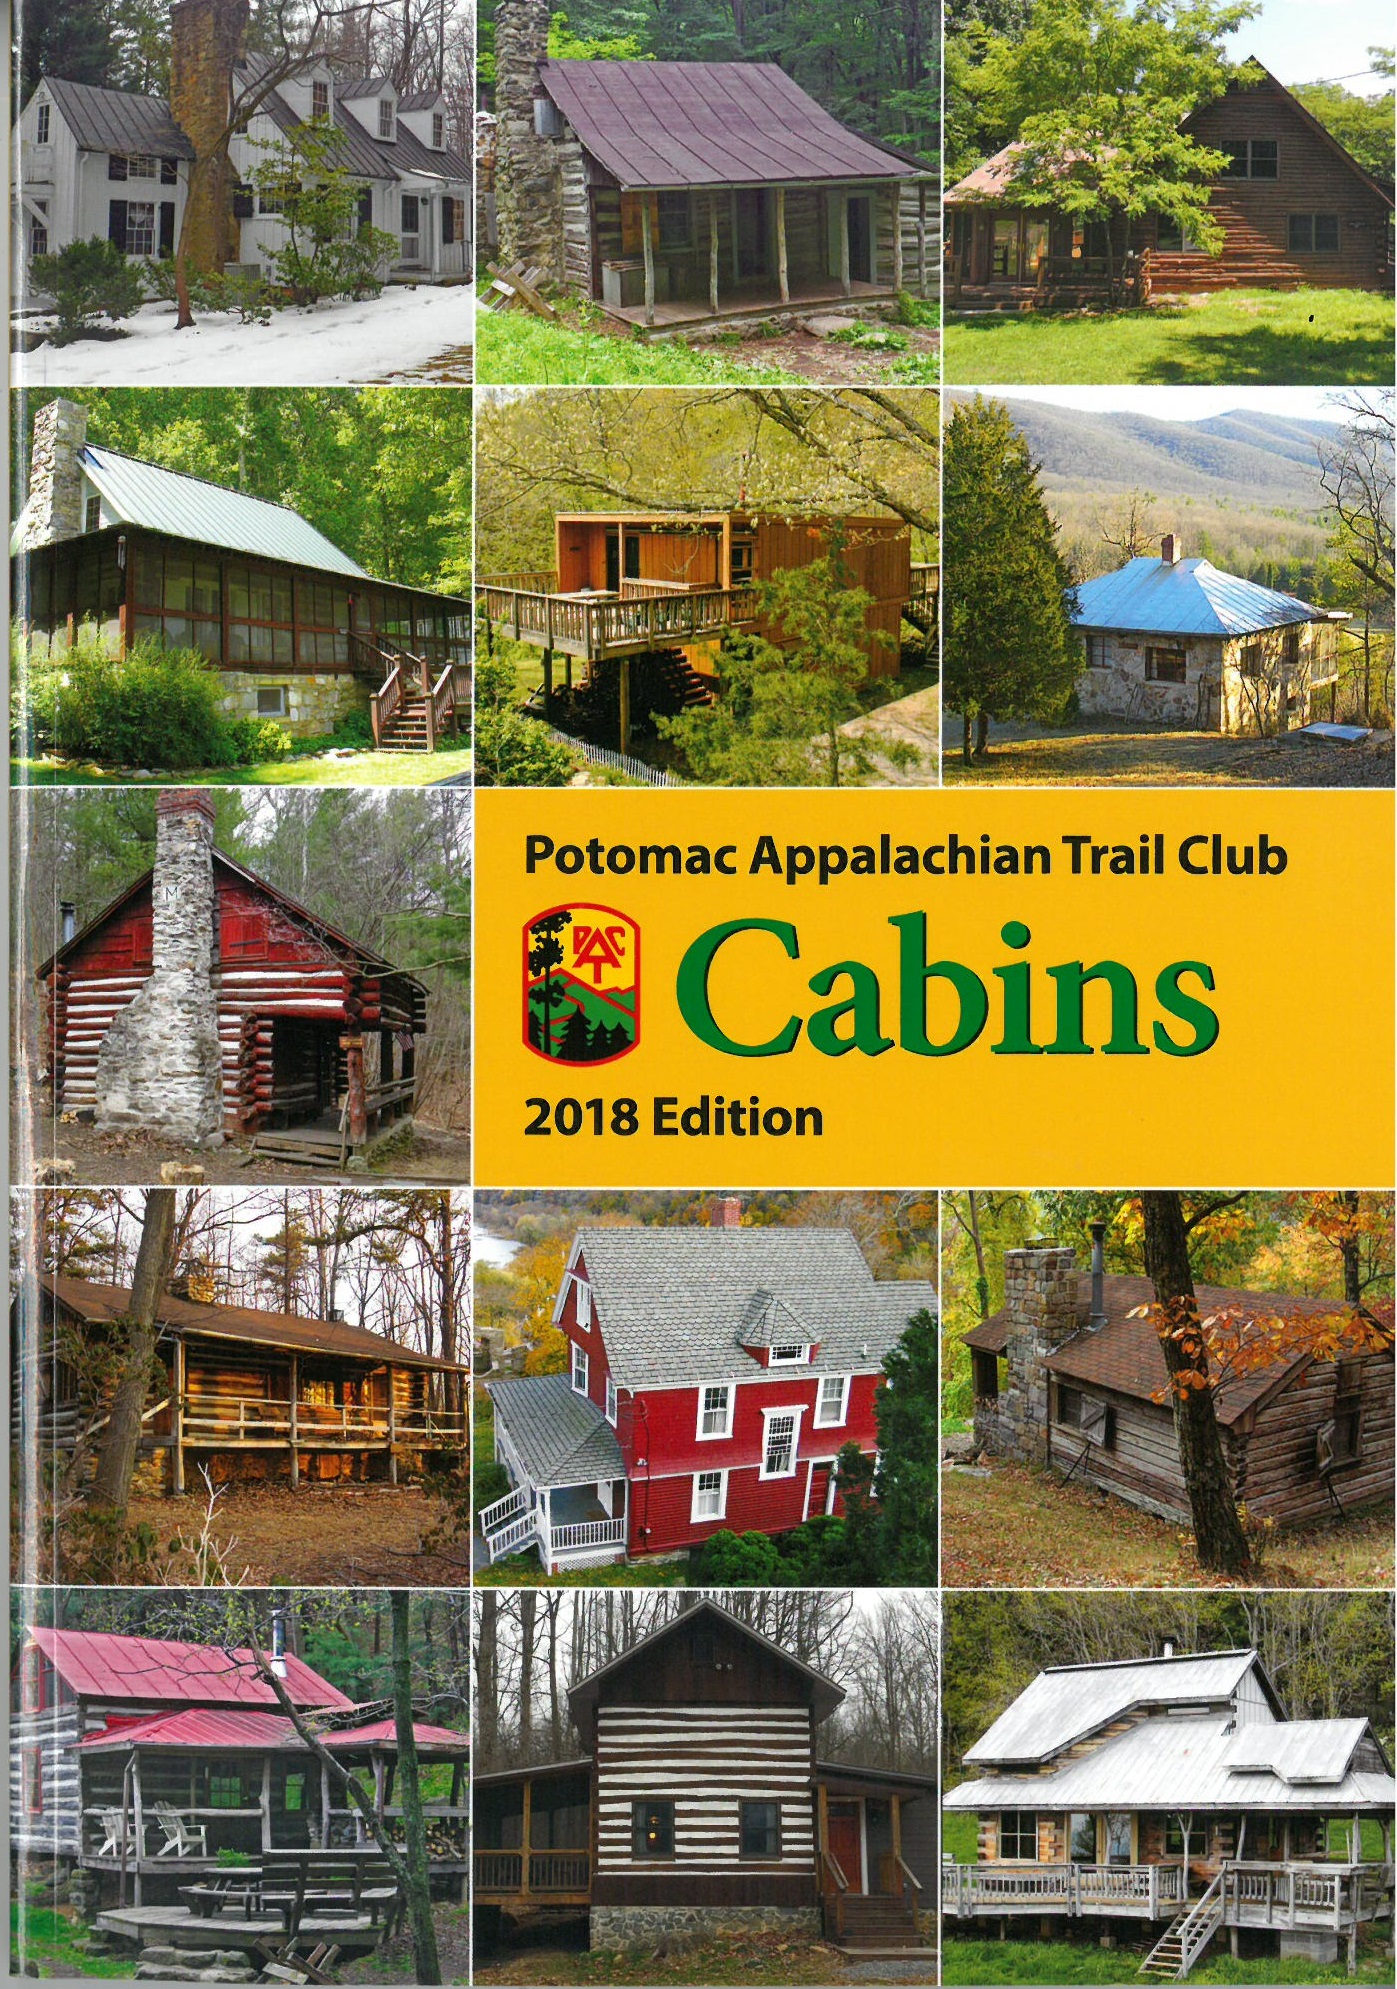 Potomac Appalachian Trail Club Cabins - 2018 Edition